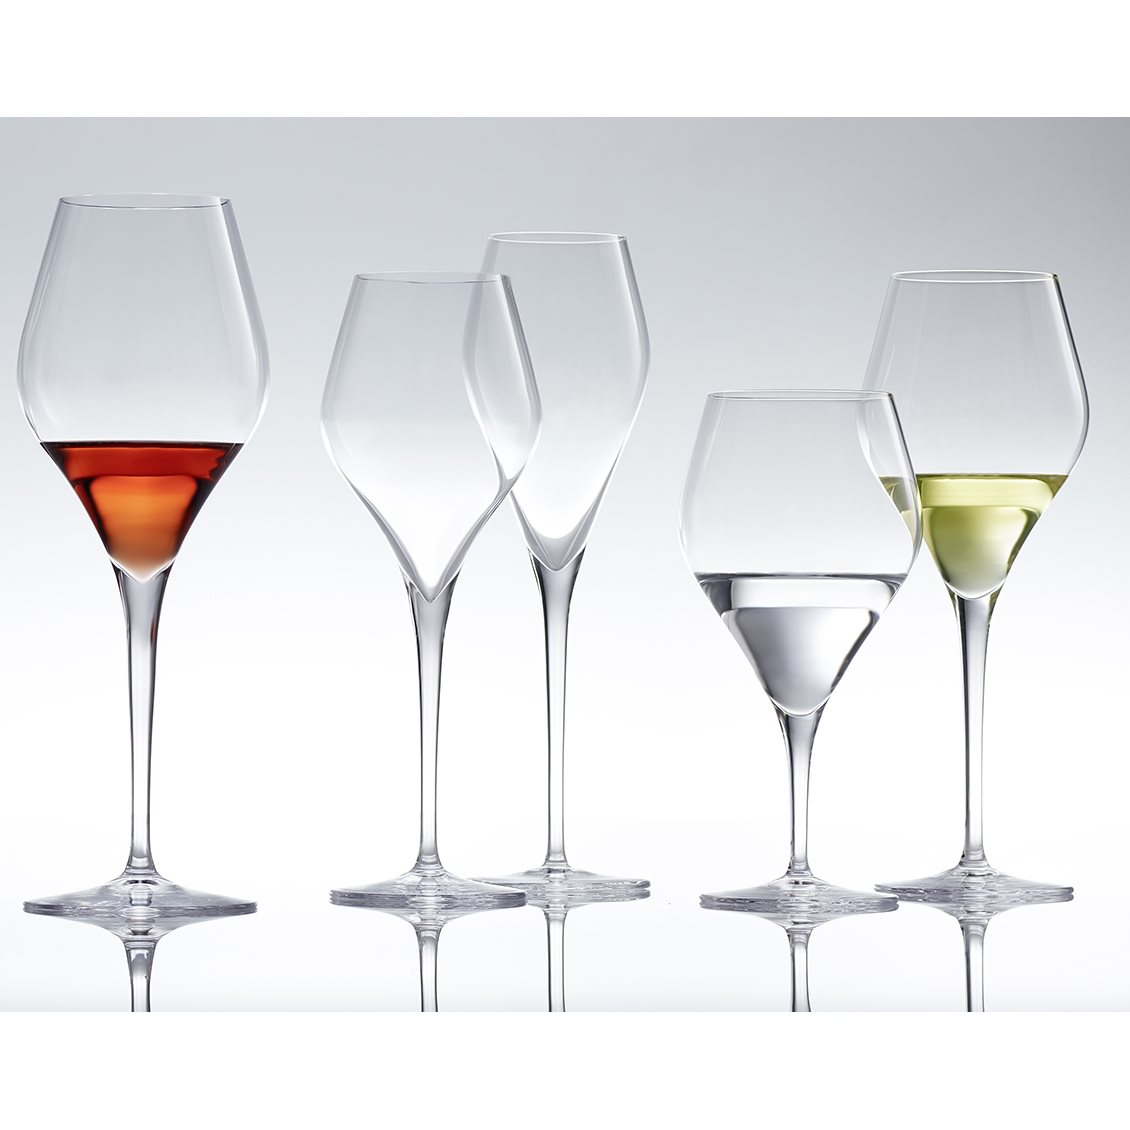 Schott Zwiesel Wine Glasses | Schott Zwiesel Wine Glasses Reviews | Tableware Wholesale